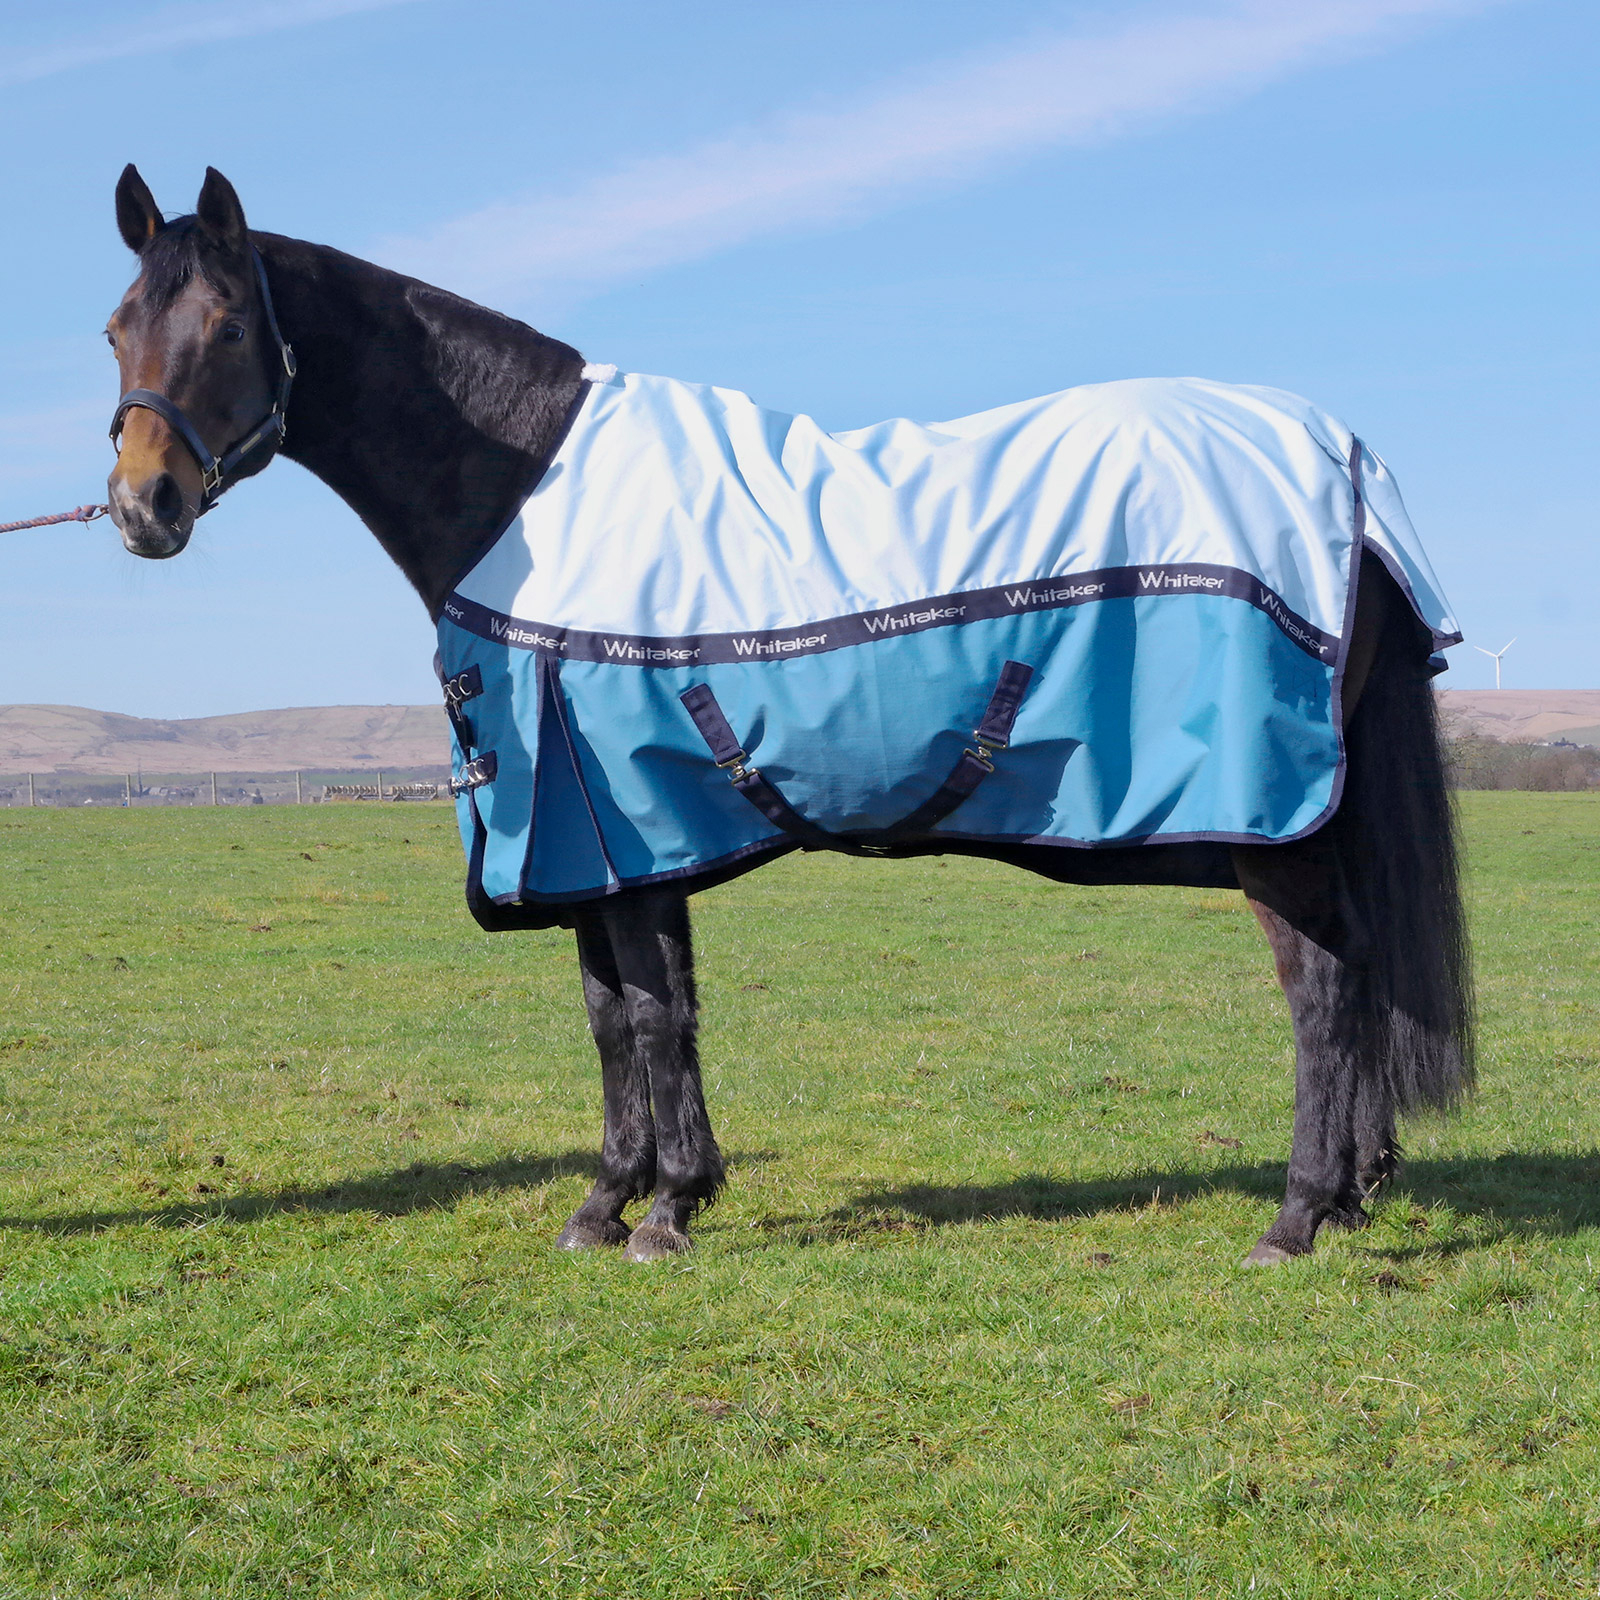 John Whitaker Lightweight Turnout Rugs